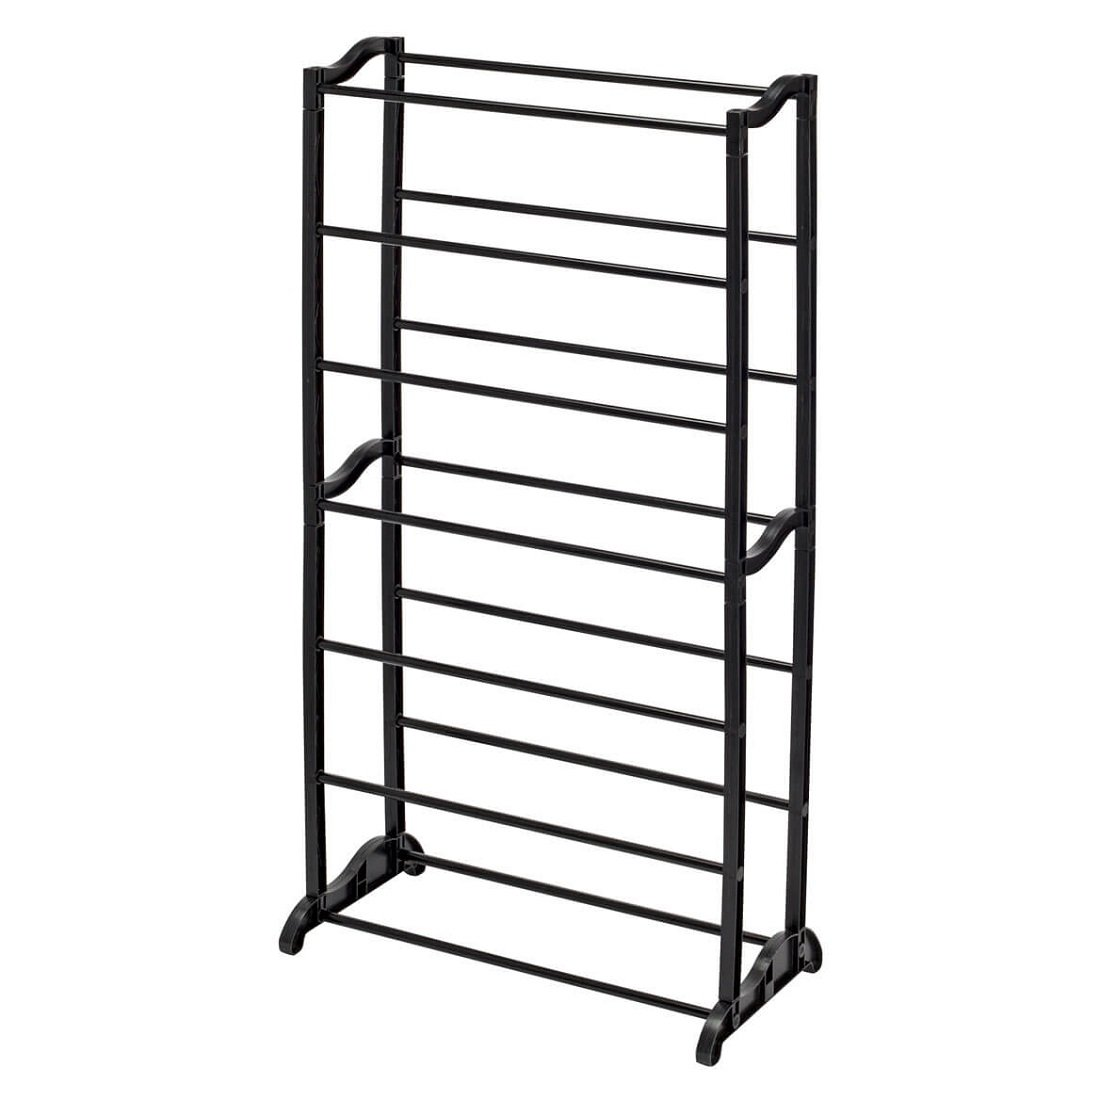 MS Home 7-Tier Tower Type Black Plastic Steel Shoe Rack Organizer - Easy-to-Assemble, Heavy Duty, Space-Saver - 20.5'' W x 6.25'' D x 36.5'' H